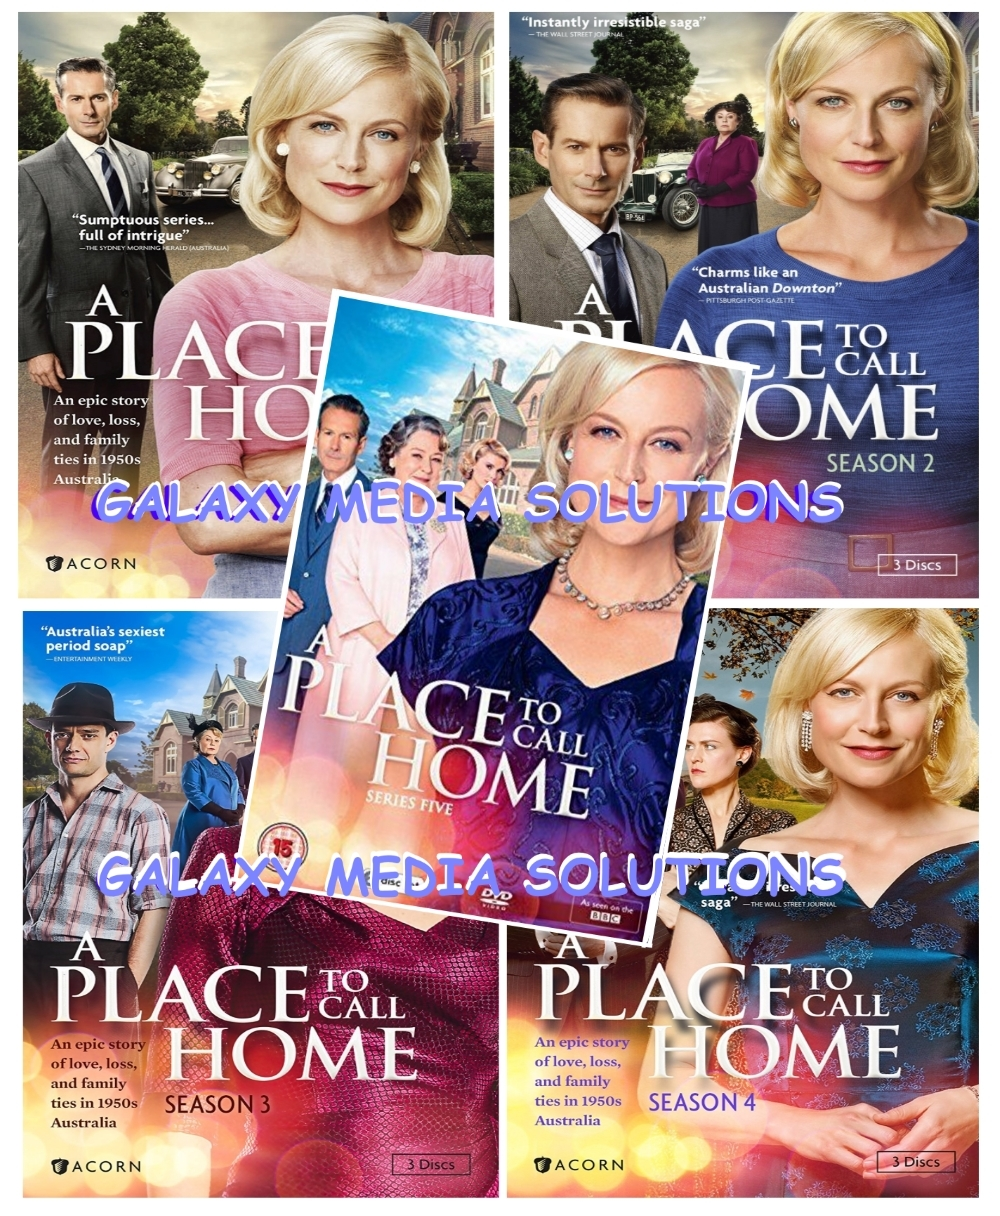 A place to call home season 1 4 dvd bundle  10 disc  1 2 3 4 5